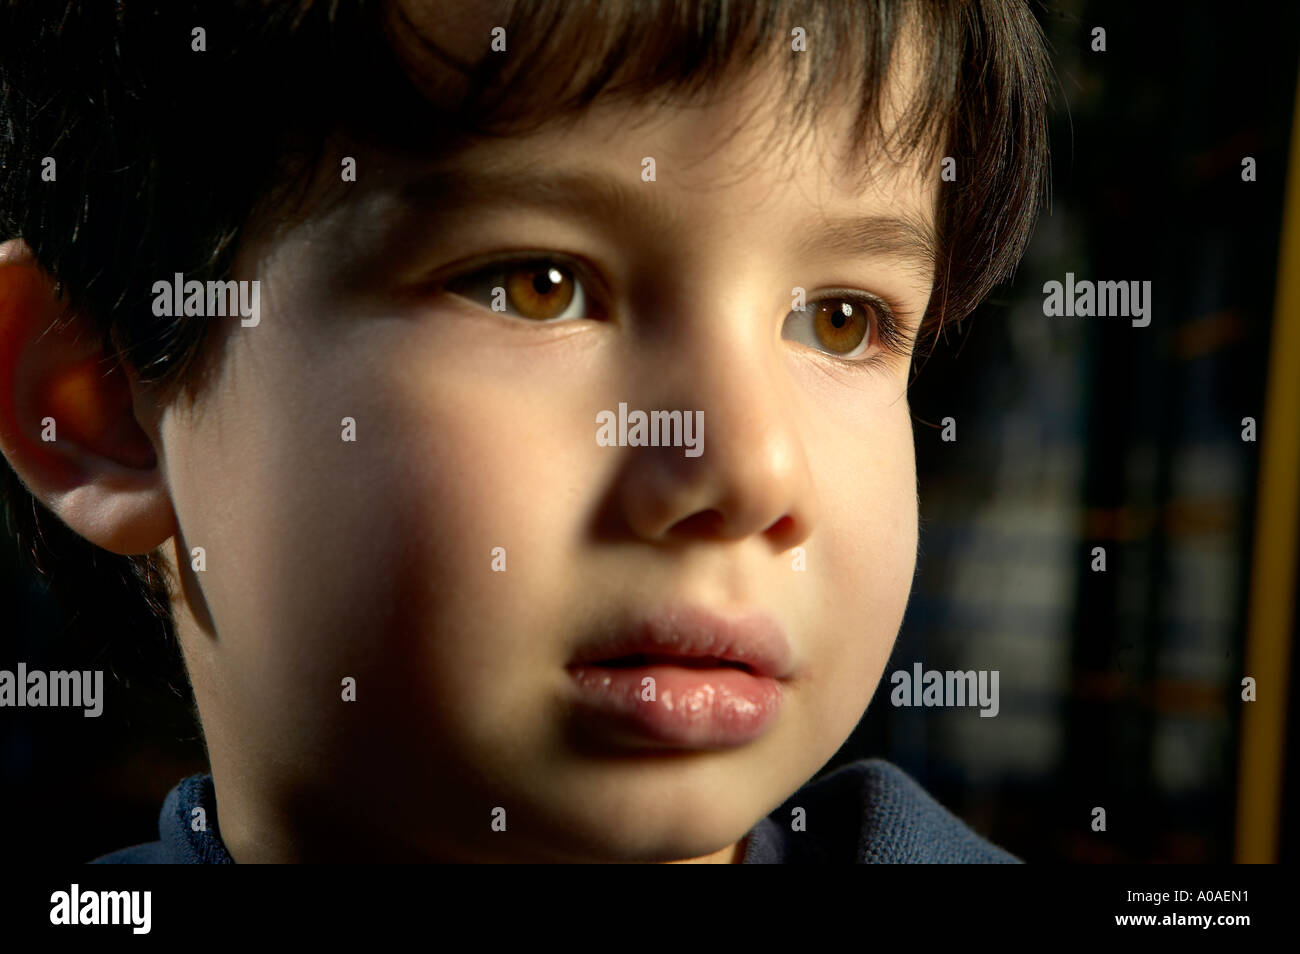 A dramatic portrait of a preschooler of mixed ethnicity of Japanese and Caucasian. - Stock Image